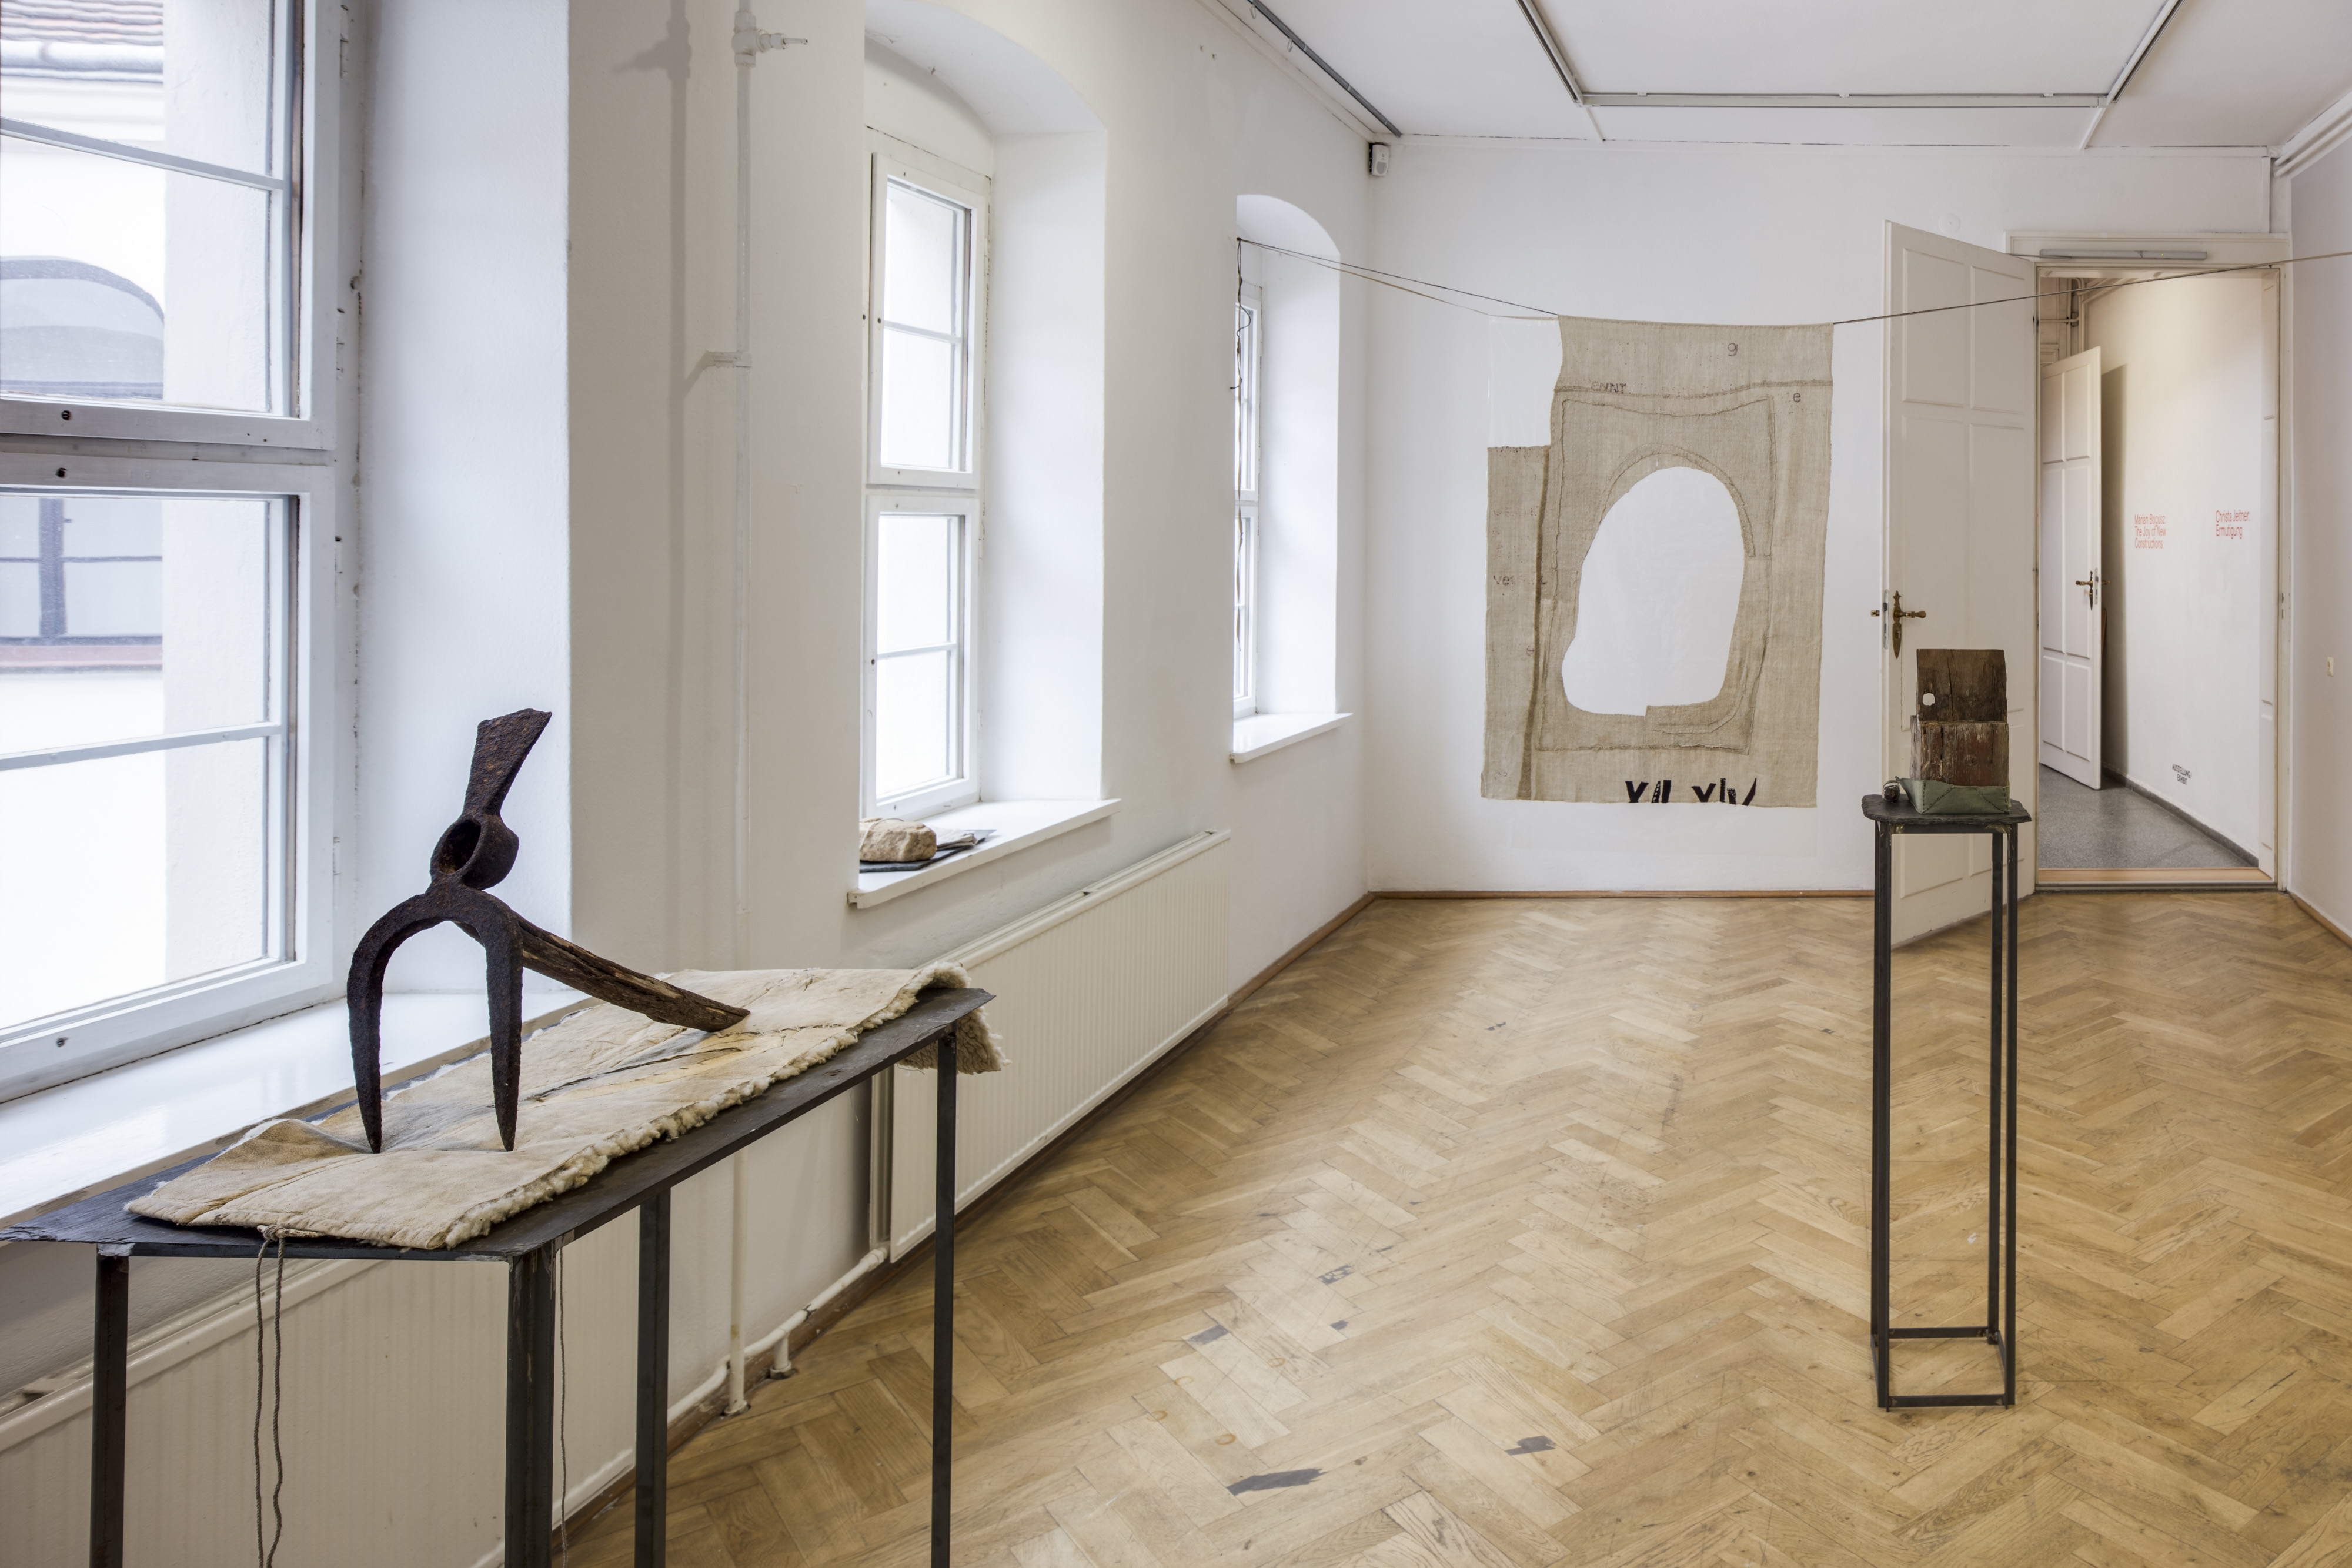 View of the exhibition Marian Bogusz: The Joy of New Constructions